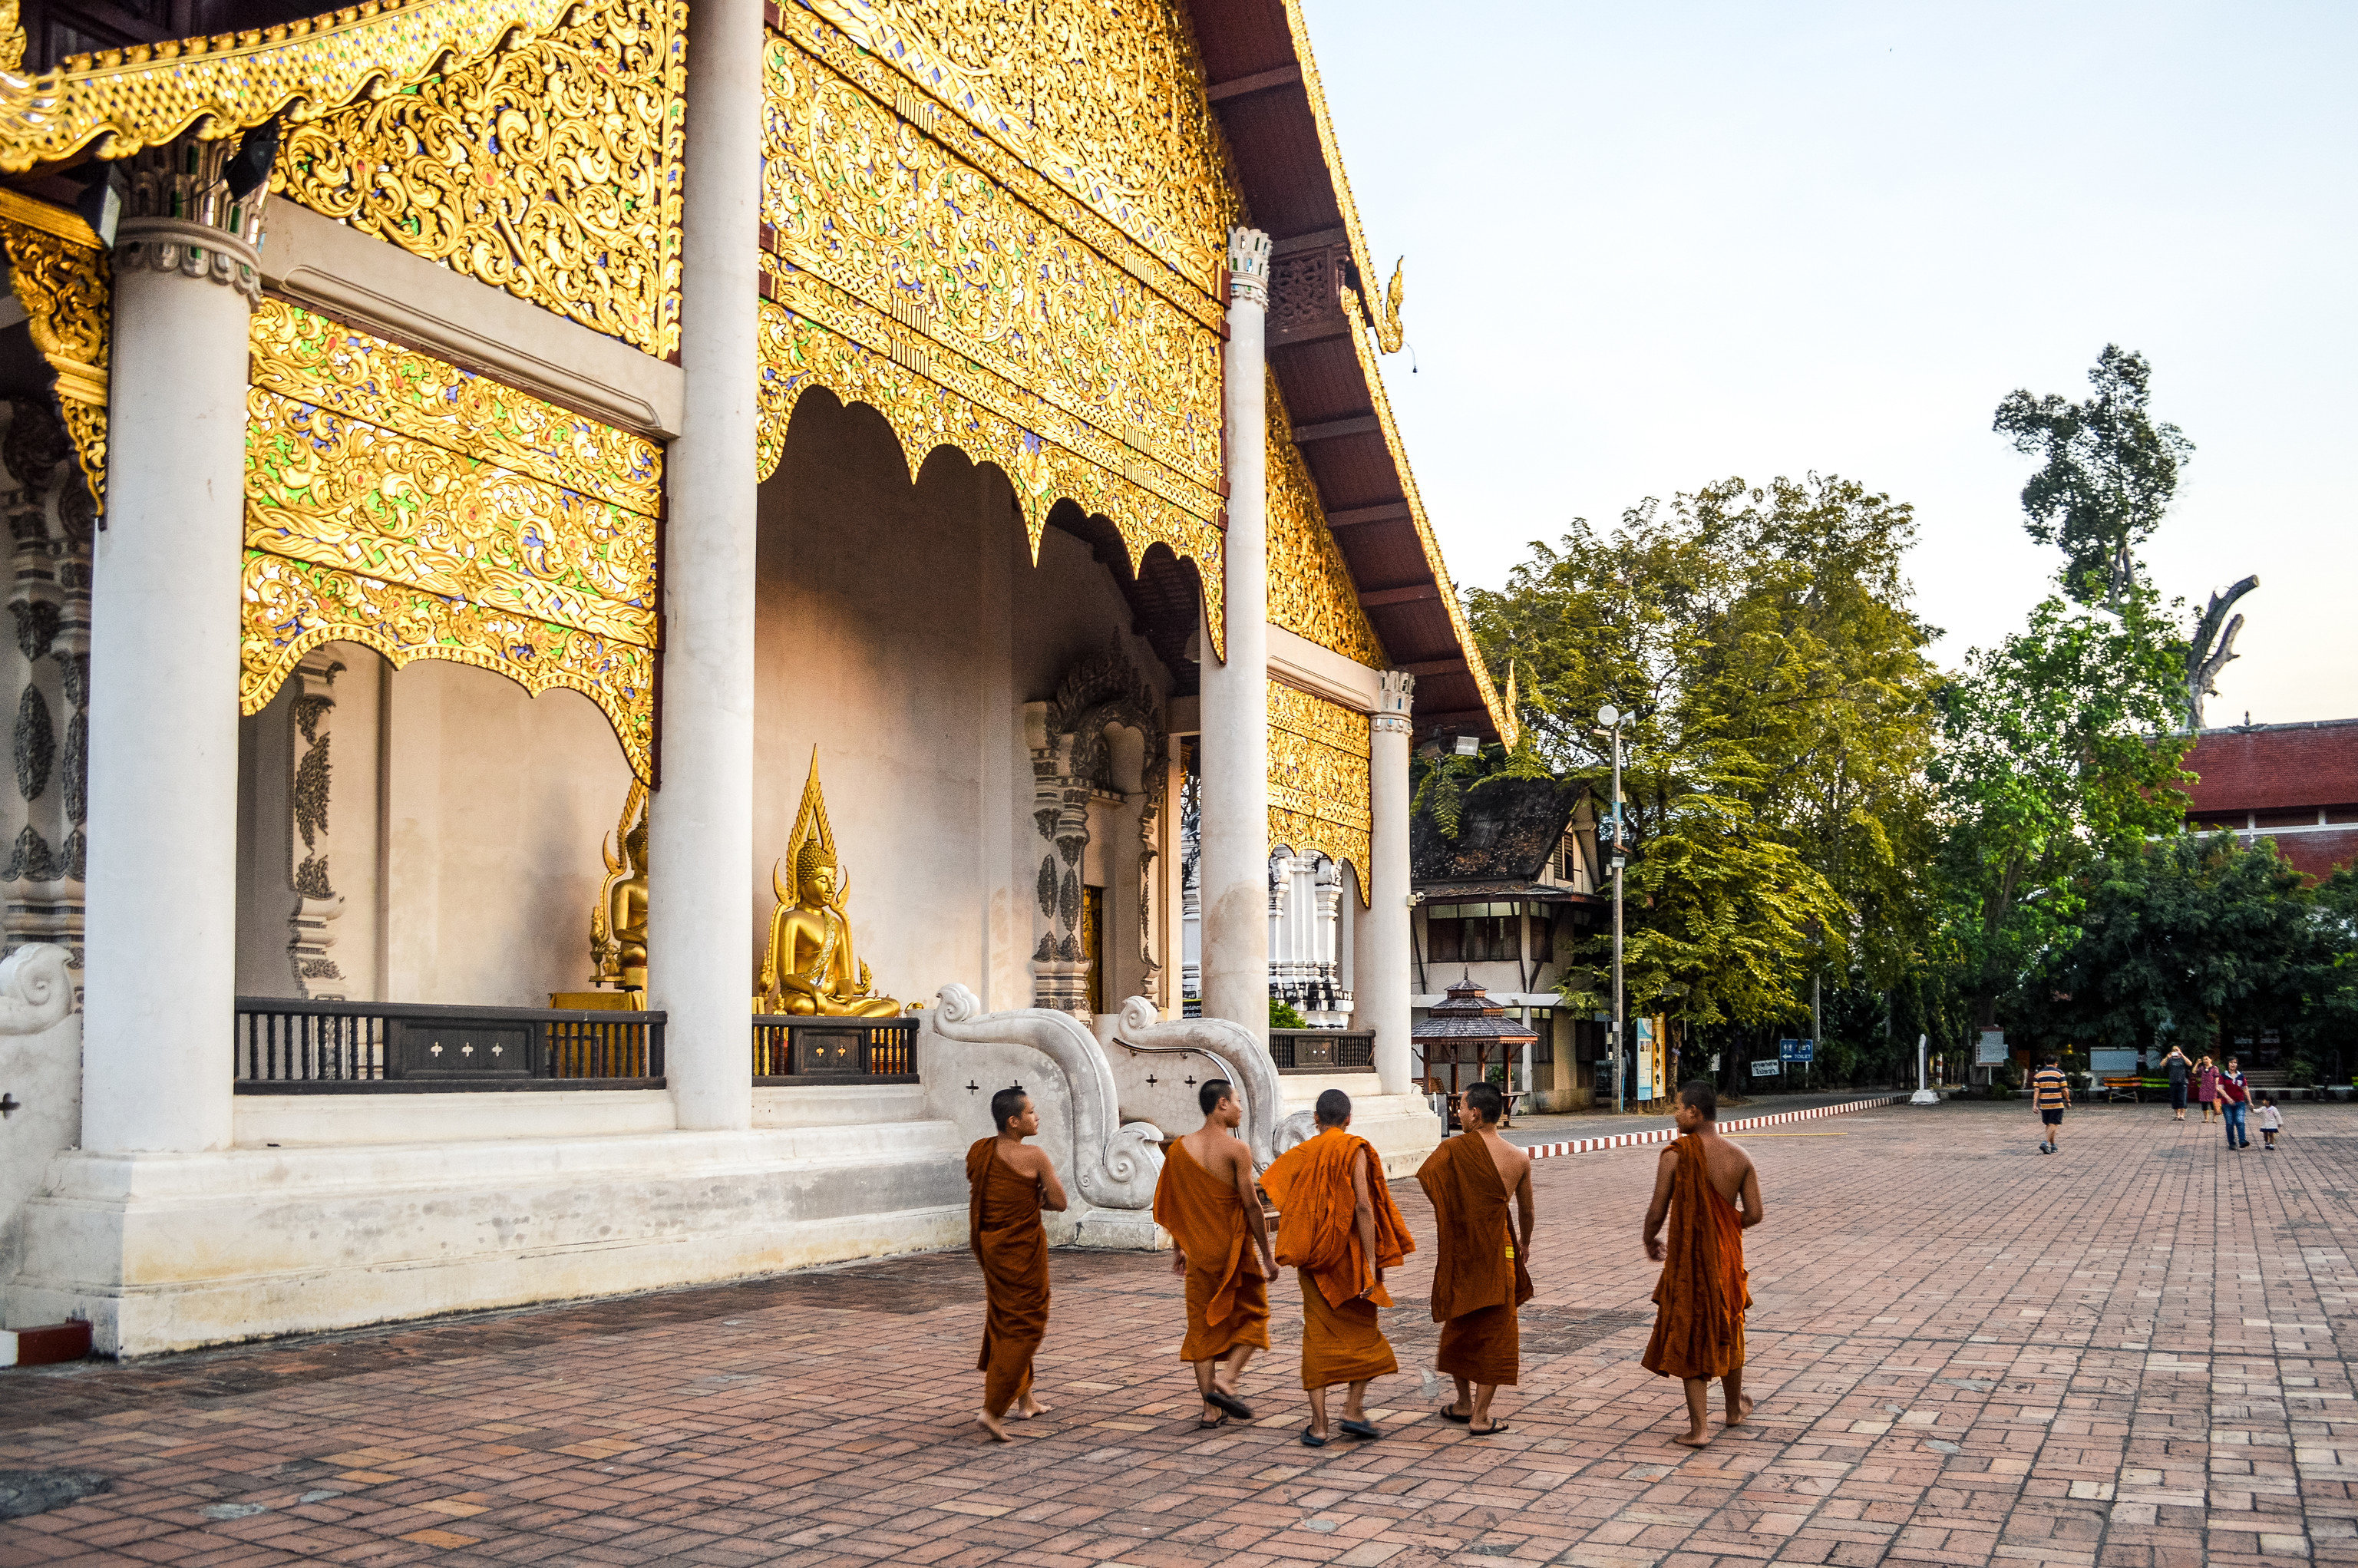 Hotels Jetsetter Guides sky ground outdoor Town plaza tourism wat place of worship temple ancient history shrine palace hindu temple travel stone